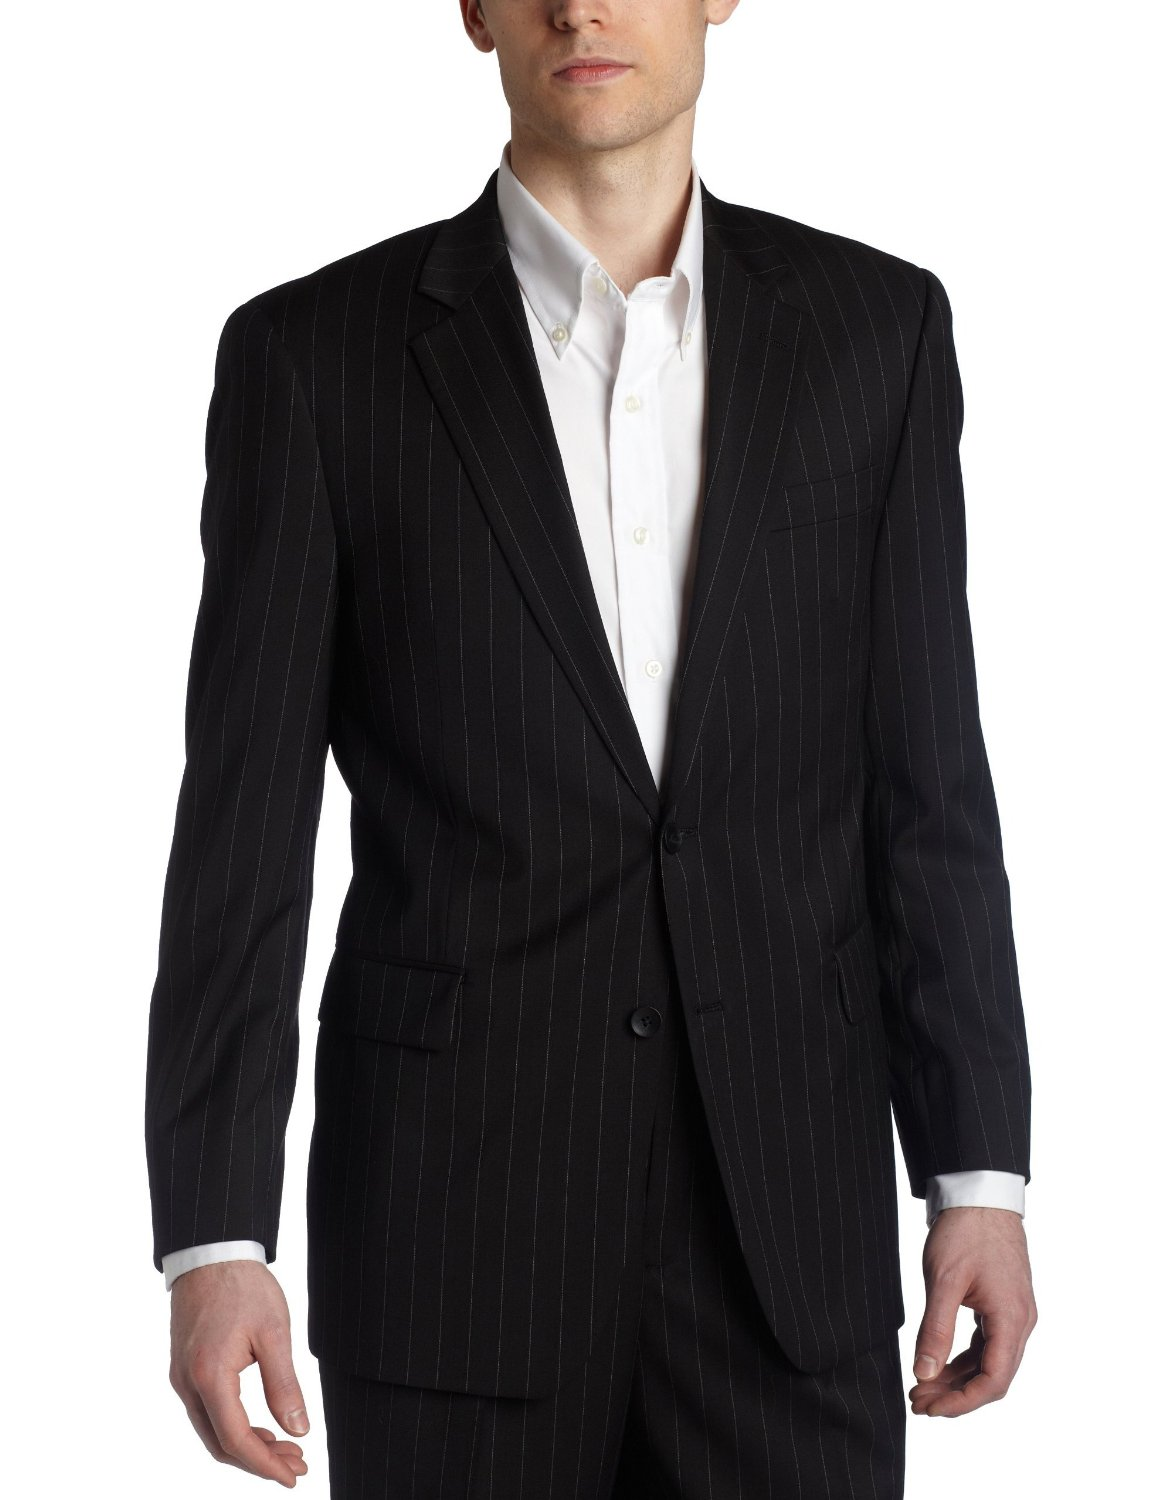 Find great deals on eBay for black womens suit jacket. Shop with confidence.